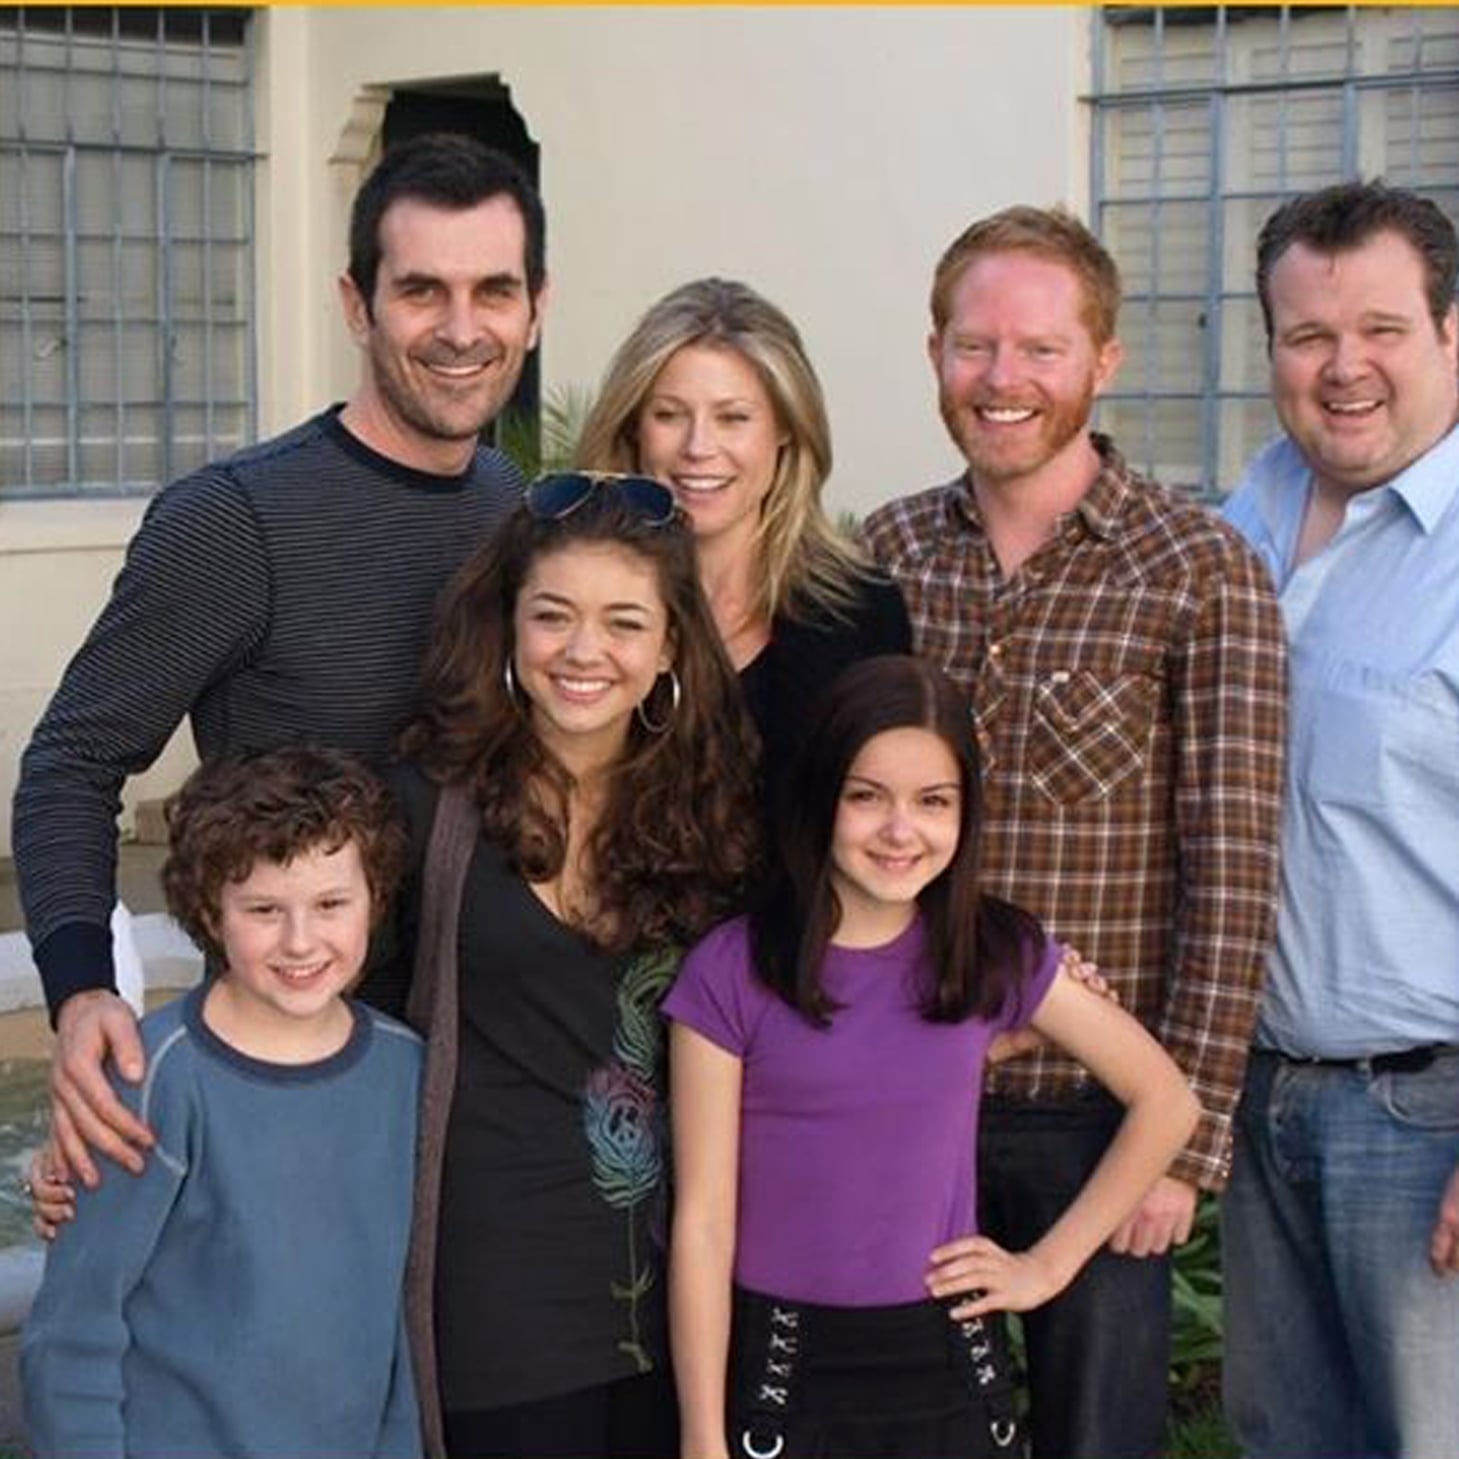 Modern Family Cast Picture 10 Years Later | POPSUGAR